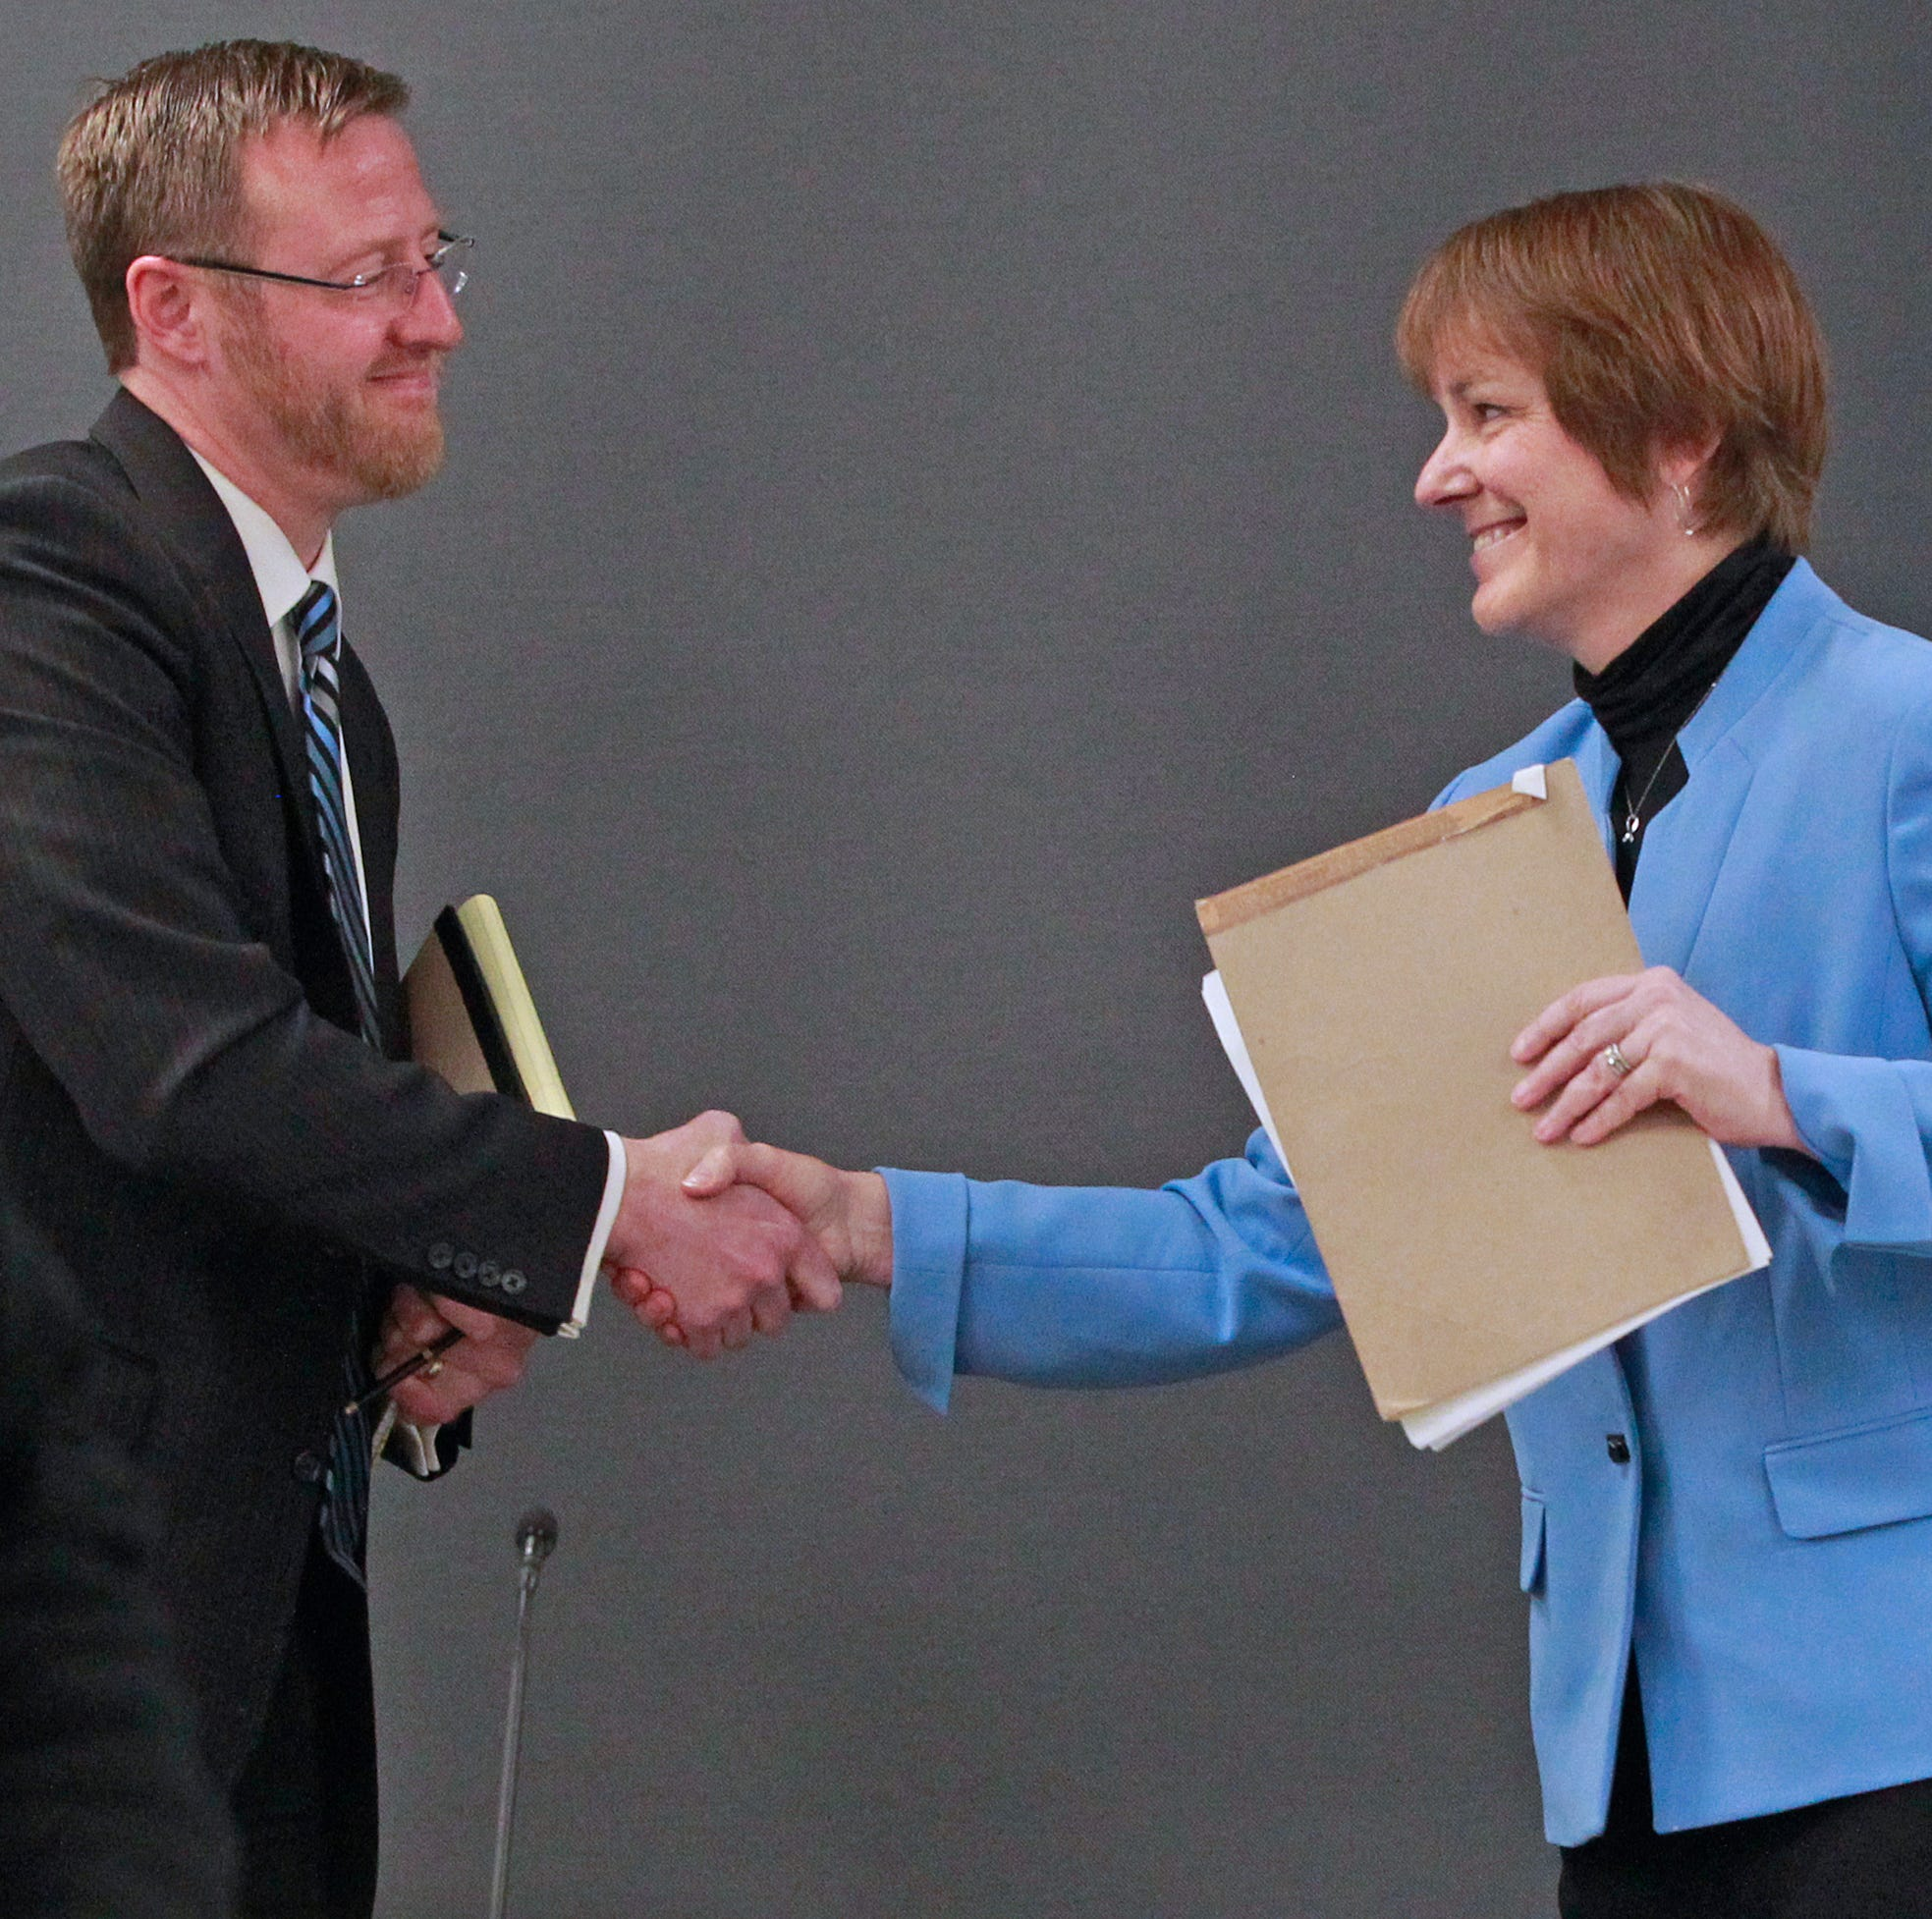 Wisconsin Supreme Court candidates Judge Brian Hagedorn, left, and Judge Lisa Neubauer, shake hands following their Tuesday forum at the Milwaukee Bar Association on March 19.